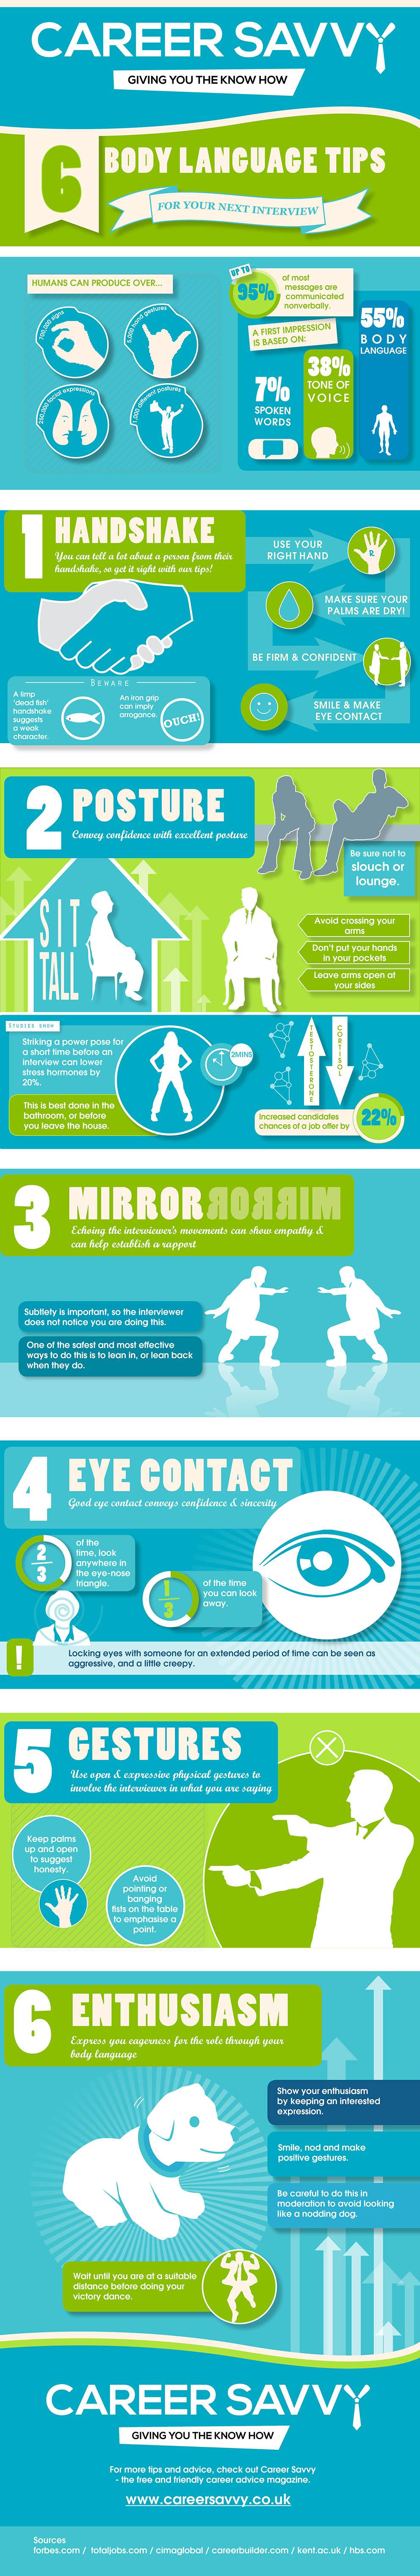 Infographic: 6 Body Language Tips For Your Next Interview [Infographic]